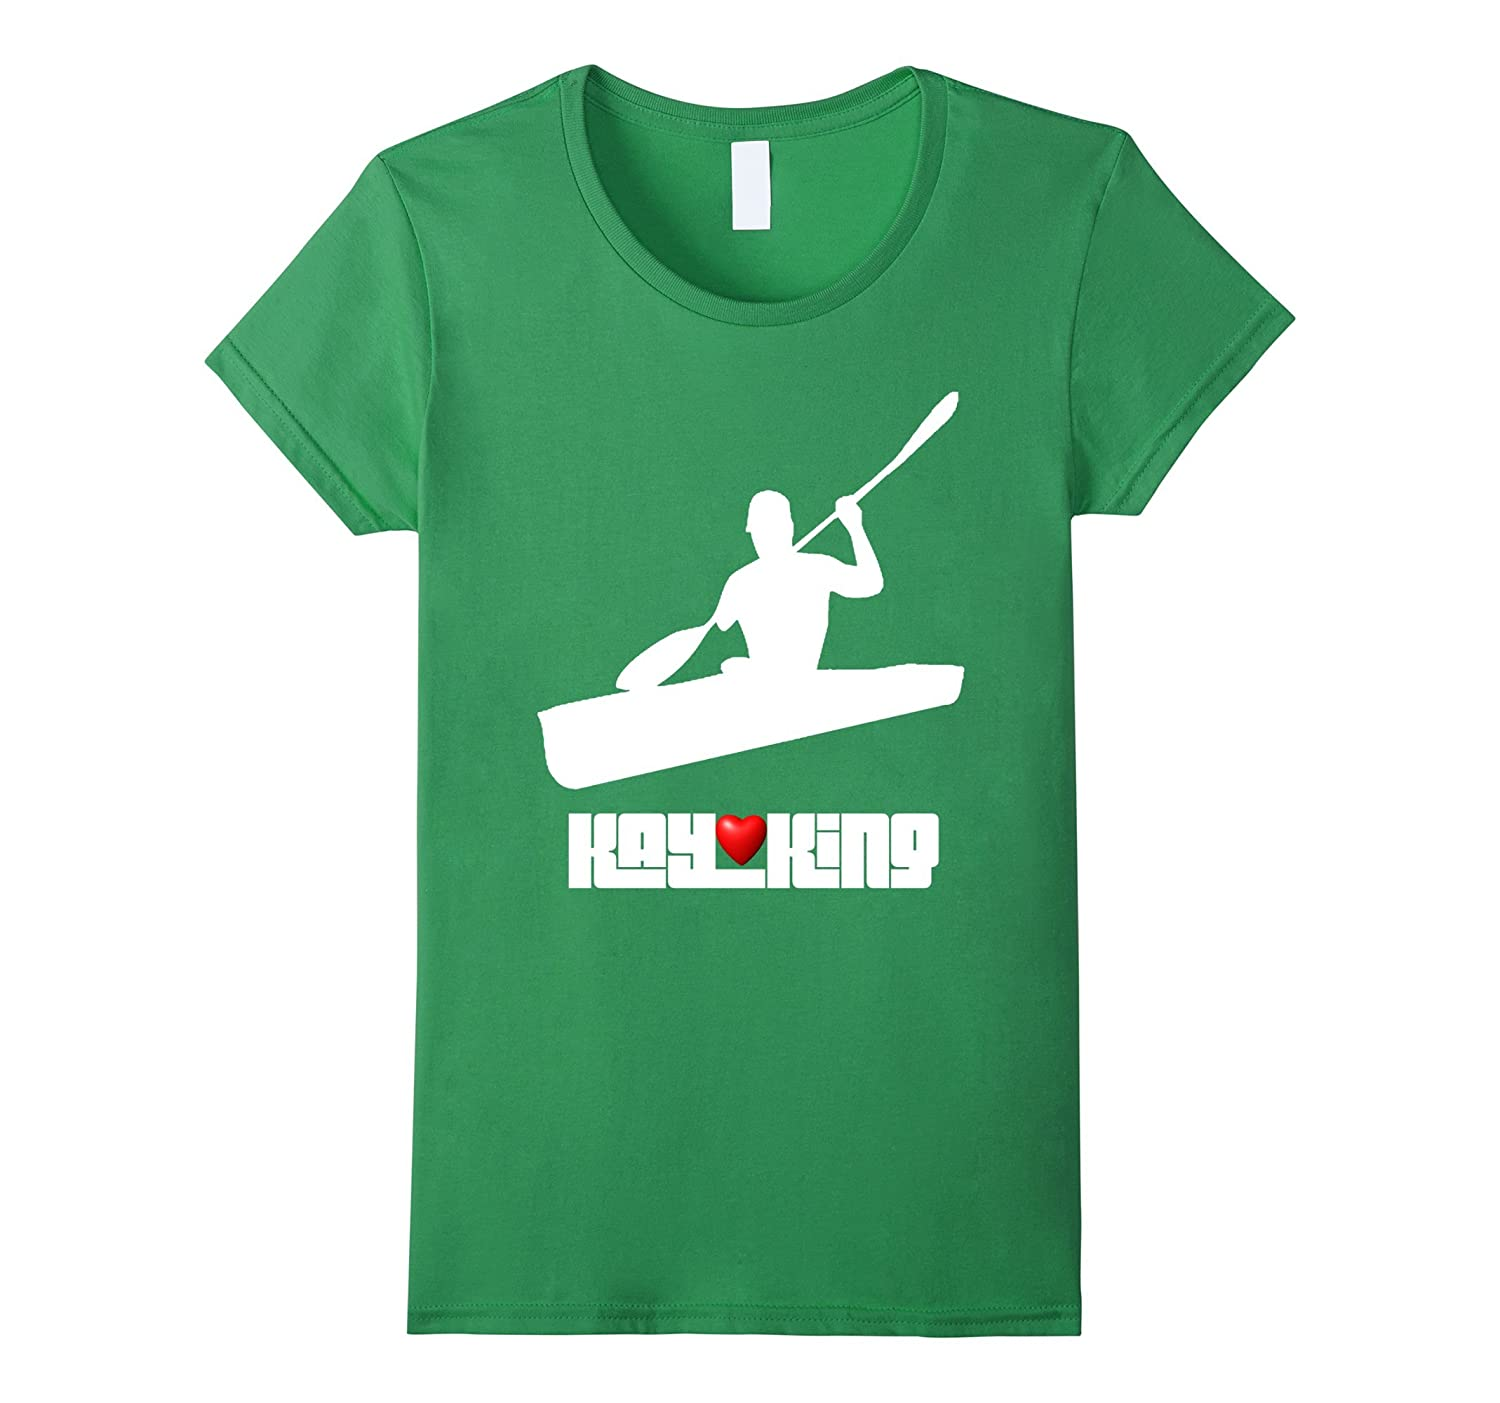 Kayaking T Shirt Kayak T-Shirt Canoeing Tee River Canoe Tee